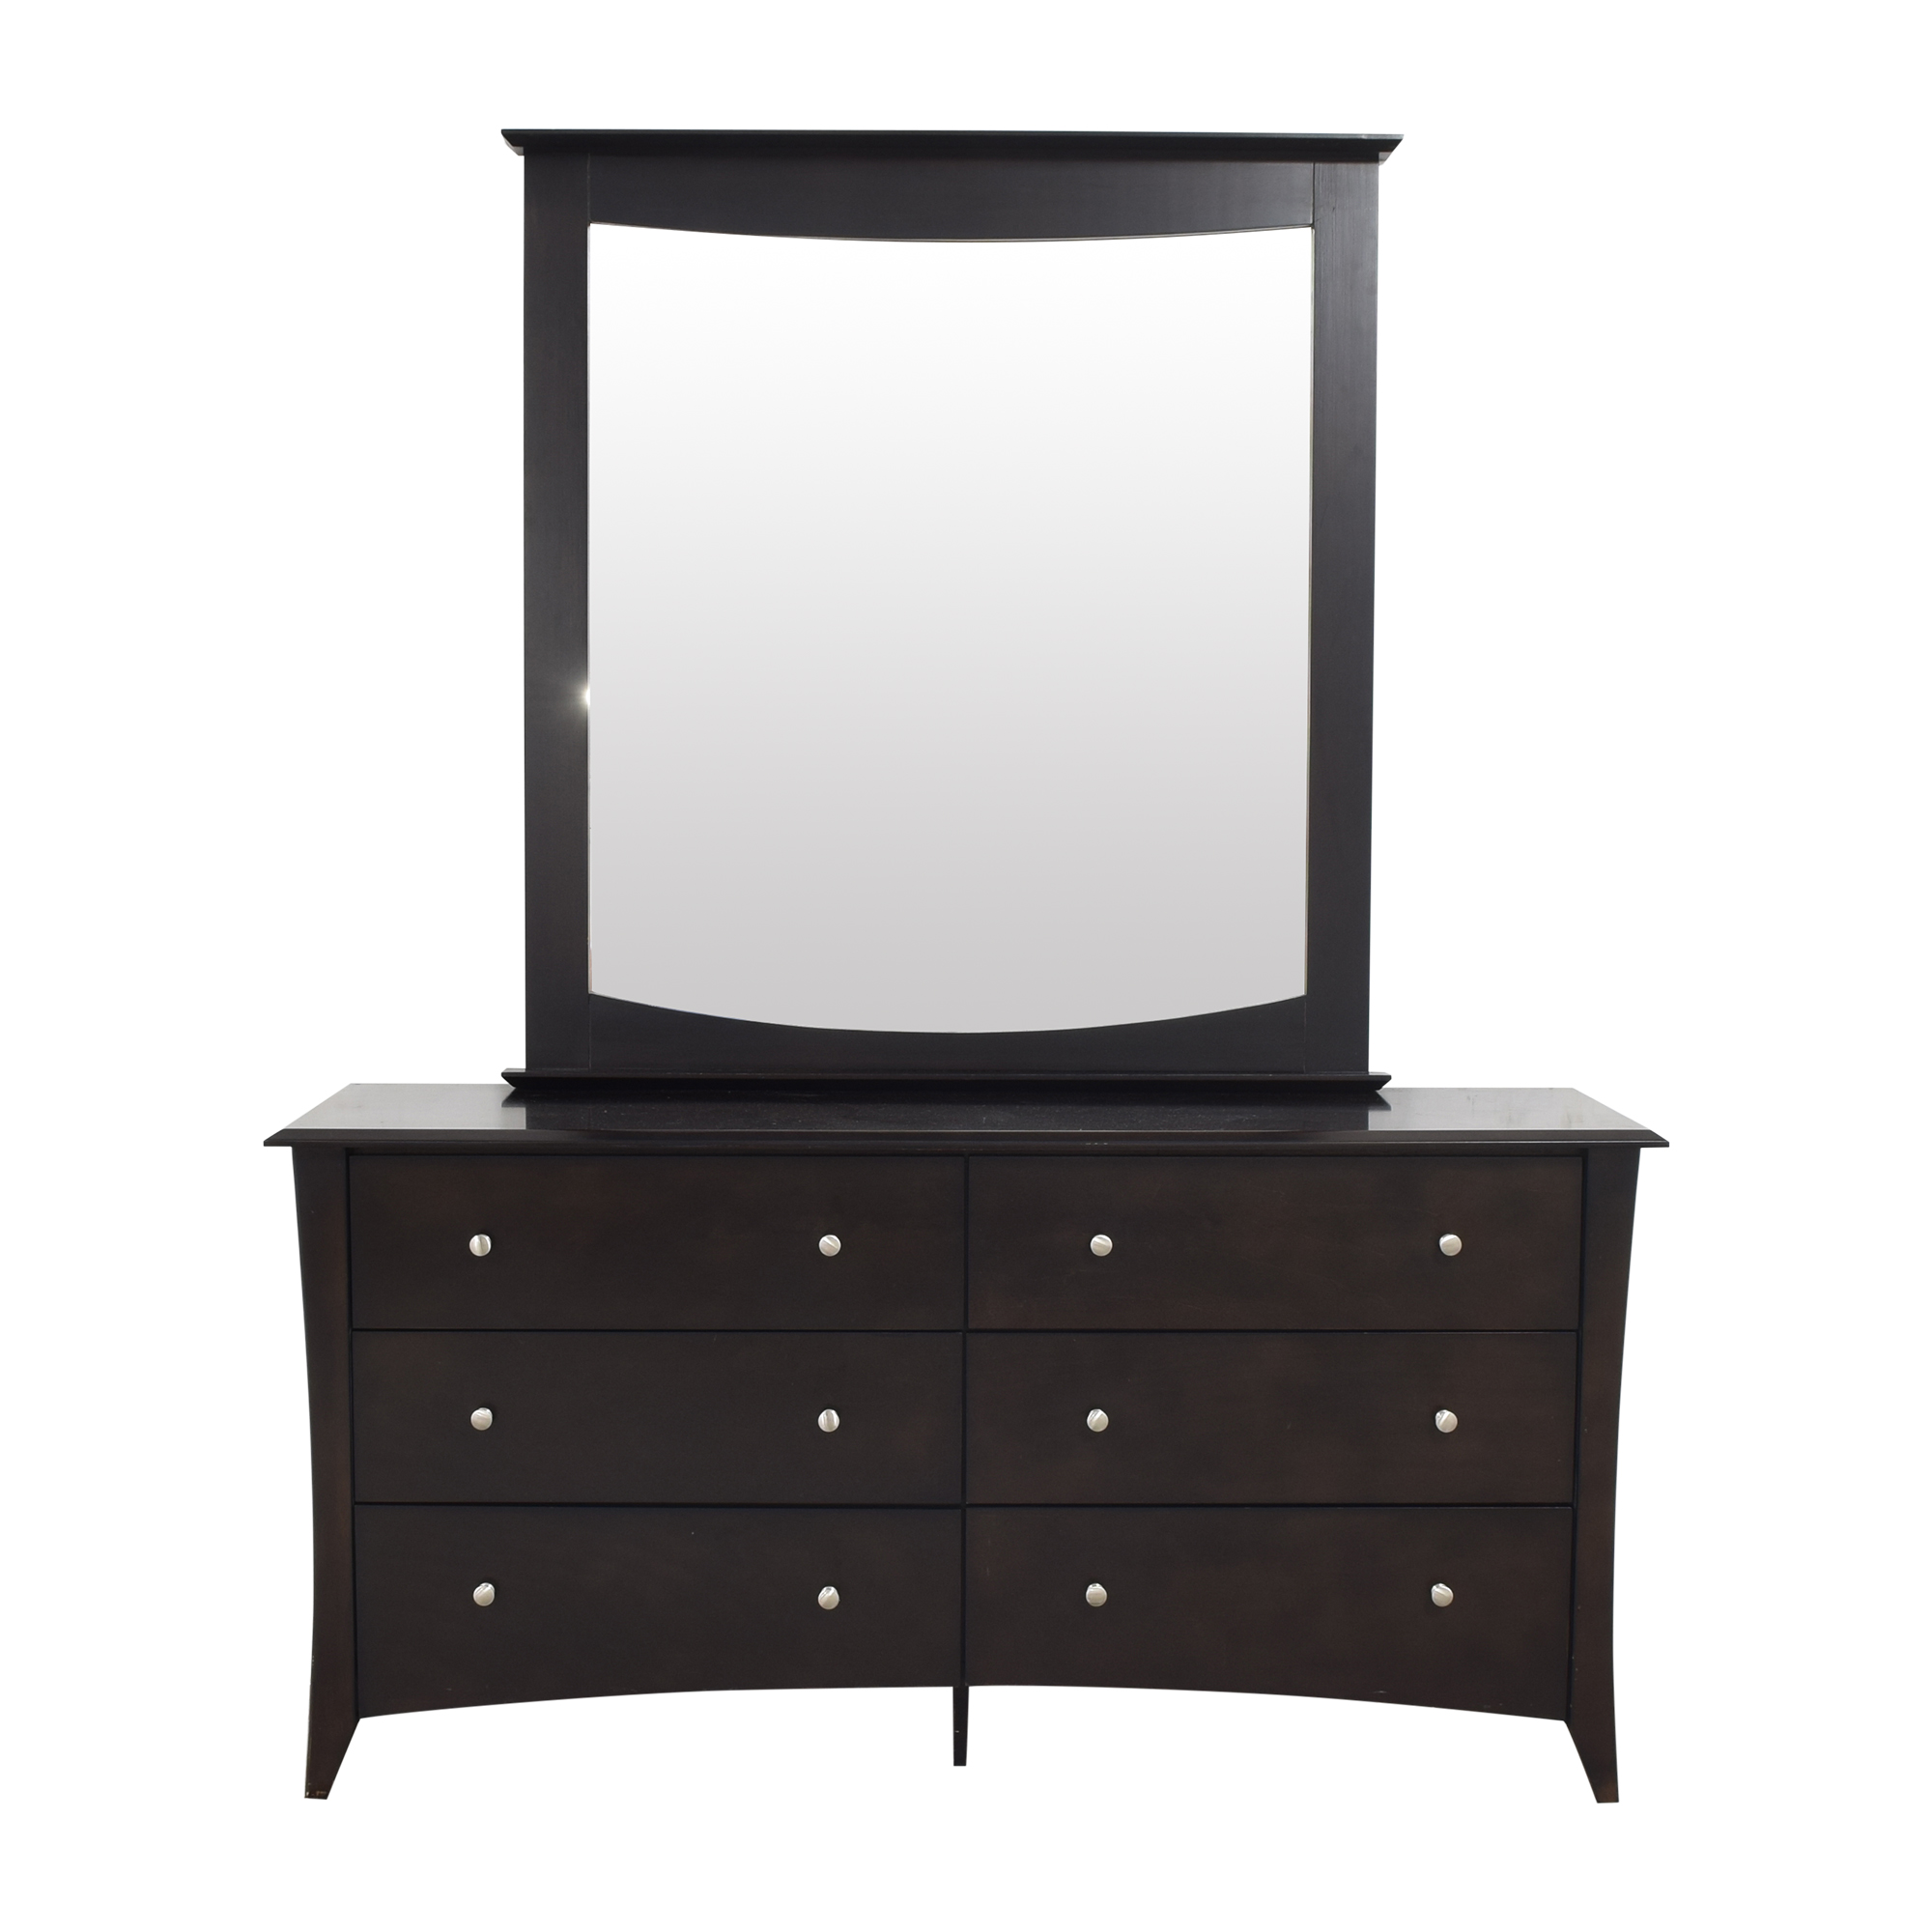 Double Dresser with Mirror dimensions